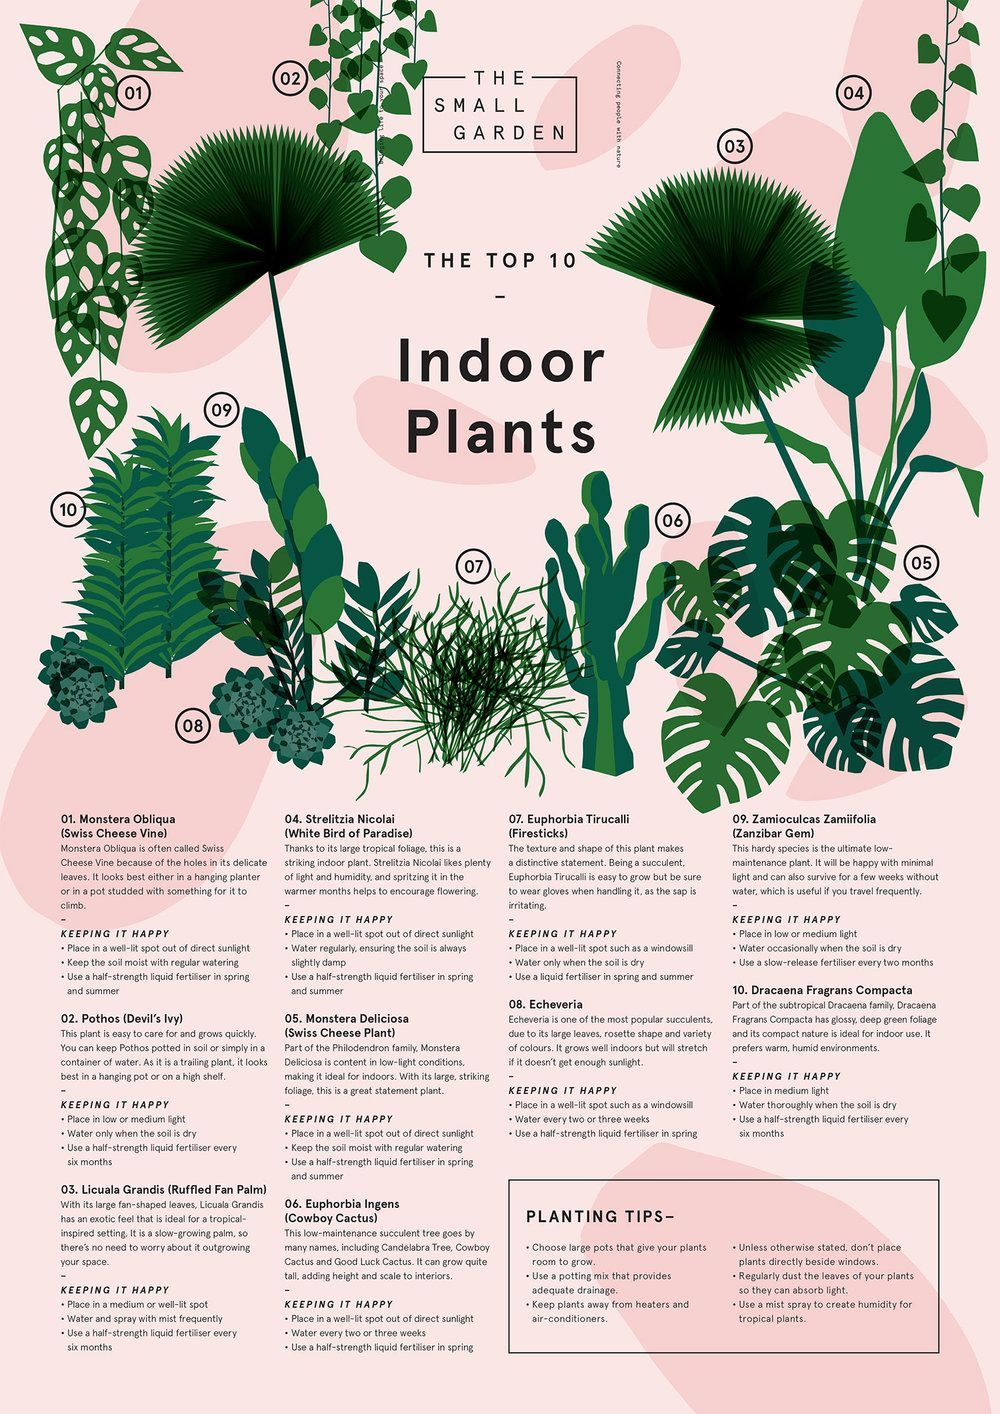 Image Result For Tropical Plant Trends Plants Indoor Plants Small Garden